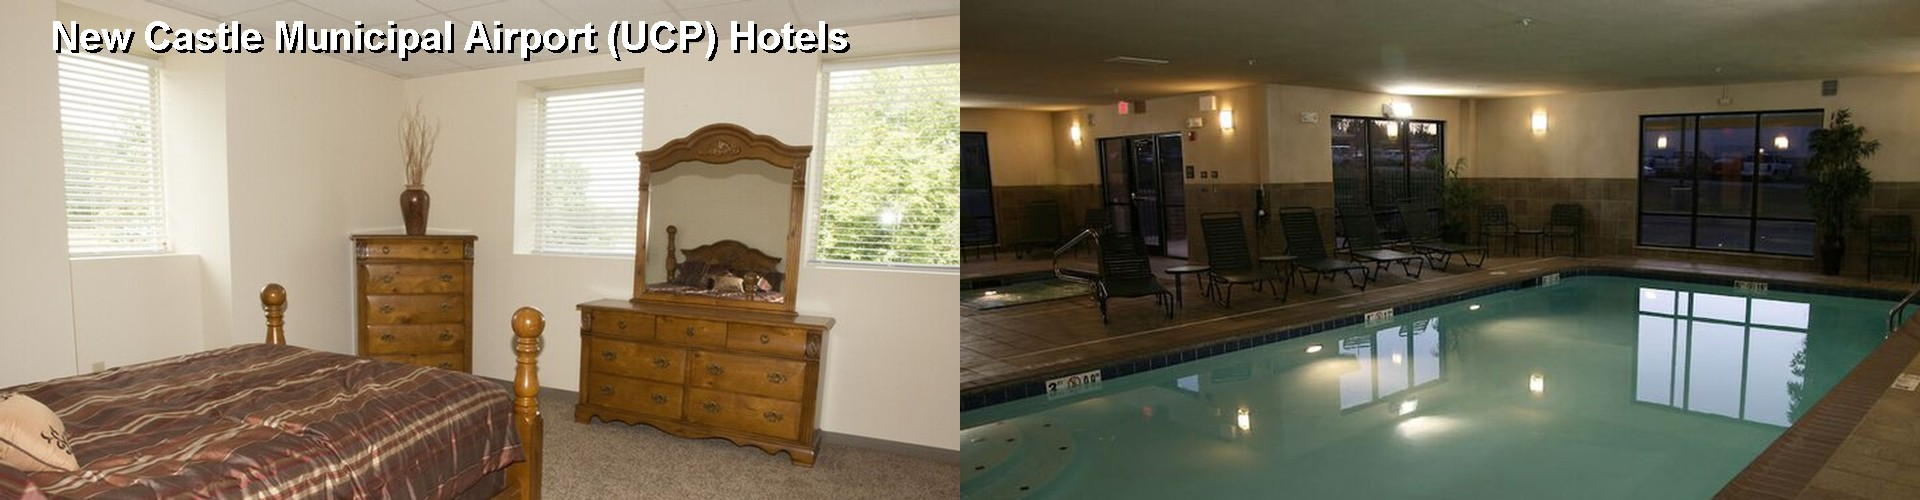 5 Best Hotels near New Castle Municipal Airport (UCP)